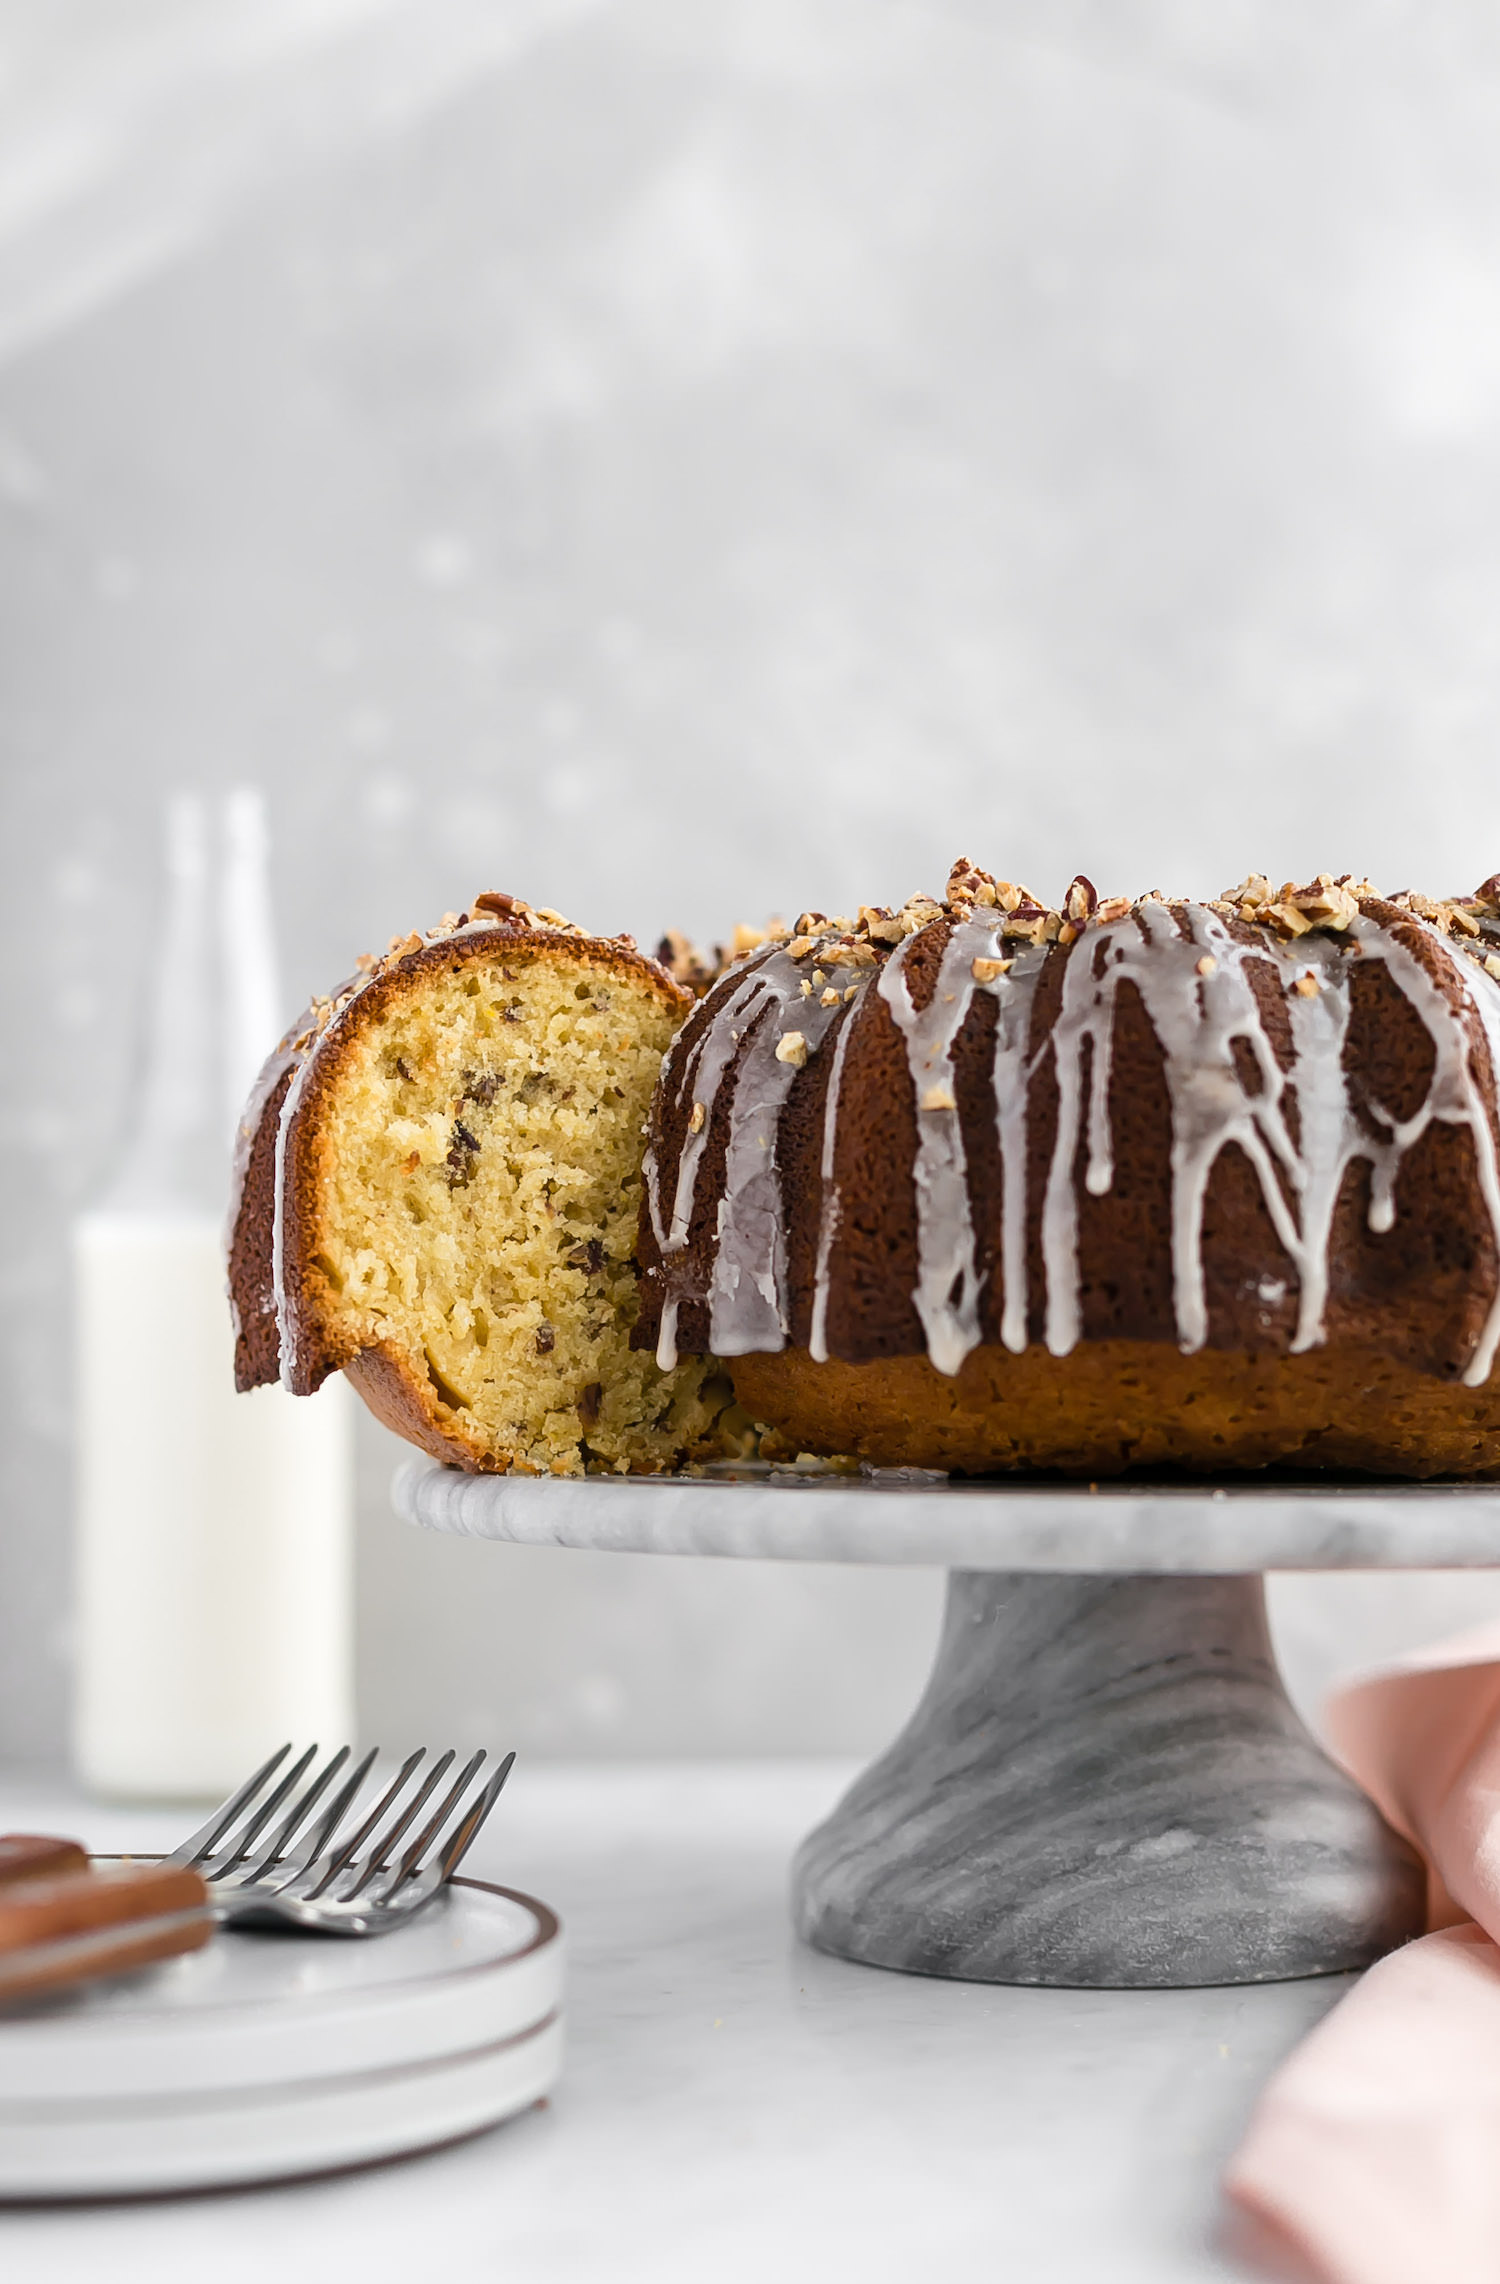 Brown Sugar Toasted Pecan Bundt Cake: soft, tender, flavor-packed Bundt cake with toasted, chopped pecans and a cinnamon glaze. Dairy-free! | TrufflesandTrends.com